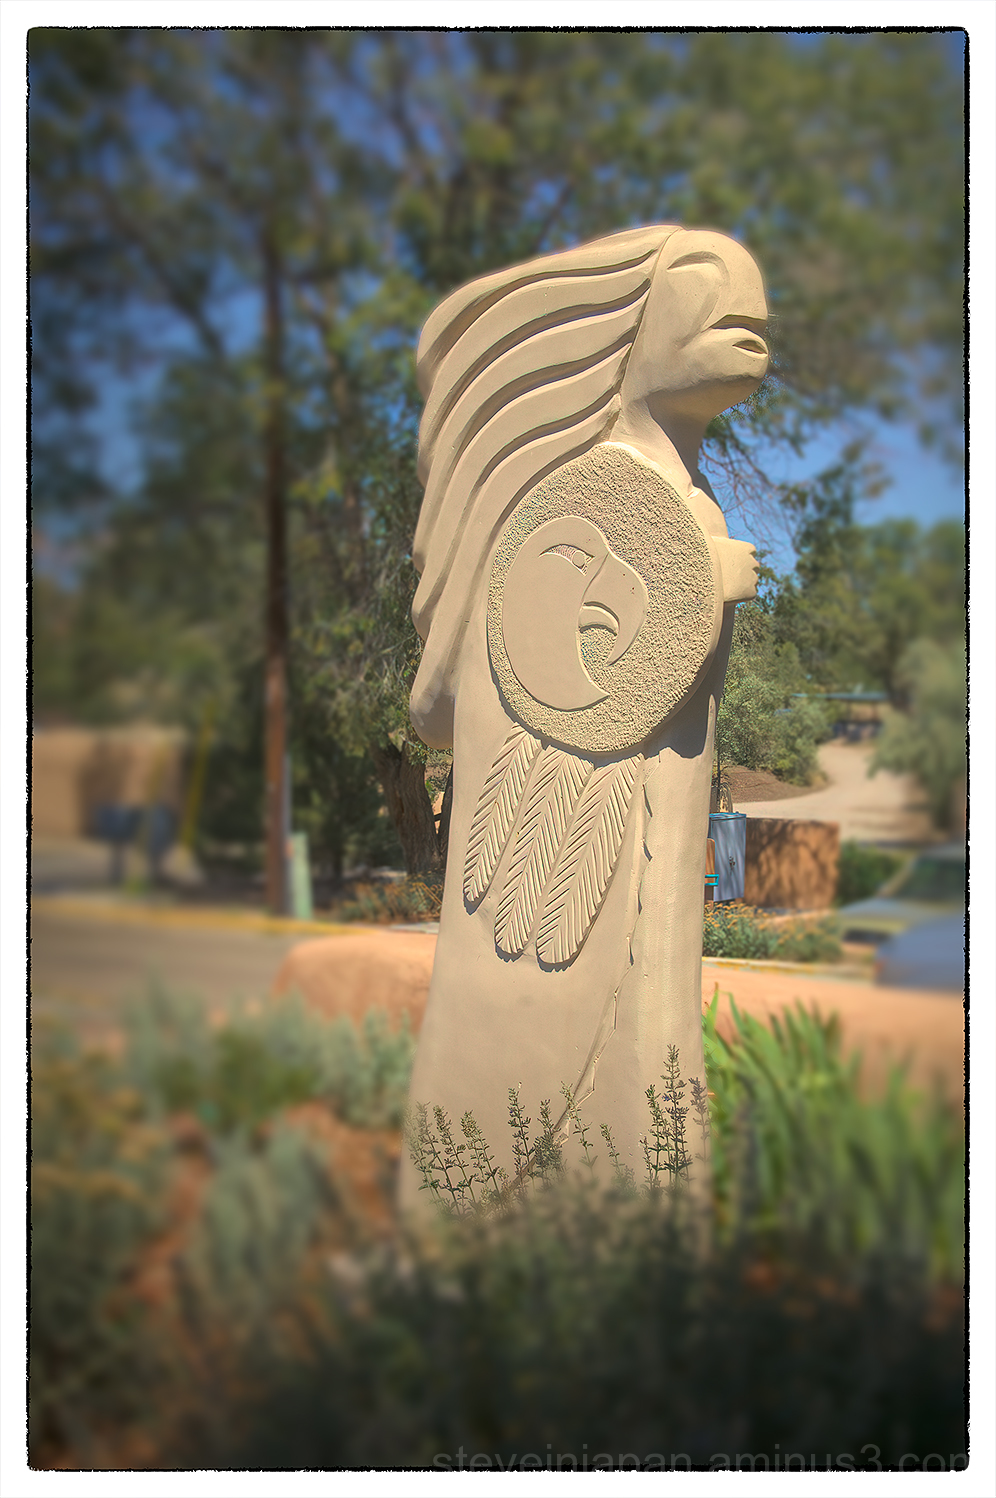 An Indian sculpture in Taos, New Mexico.